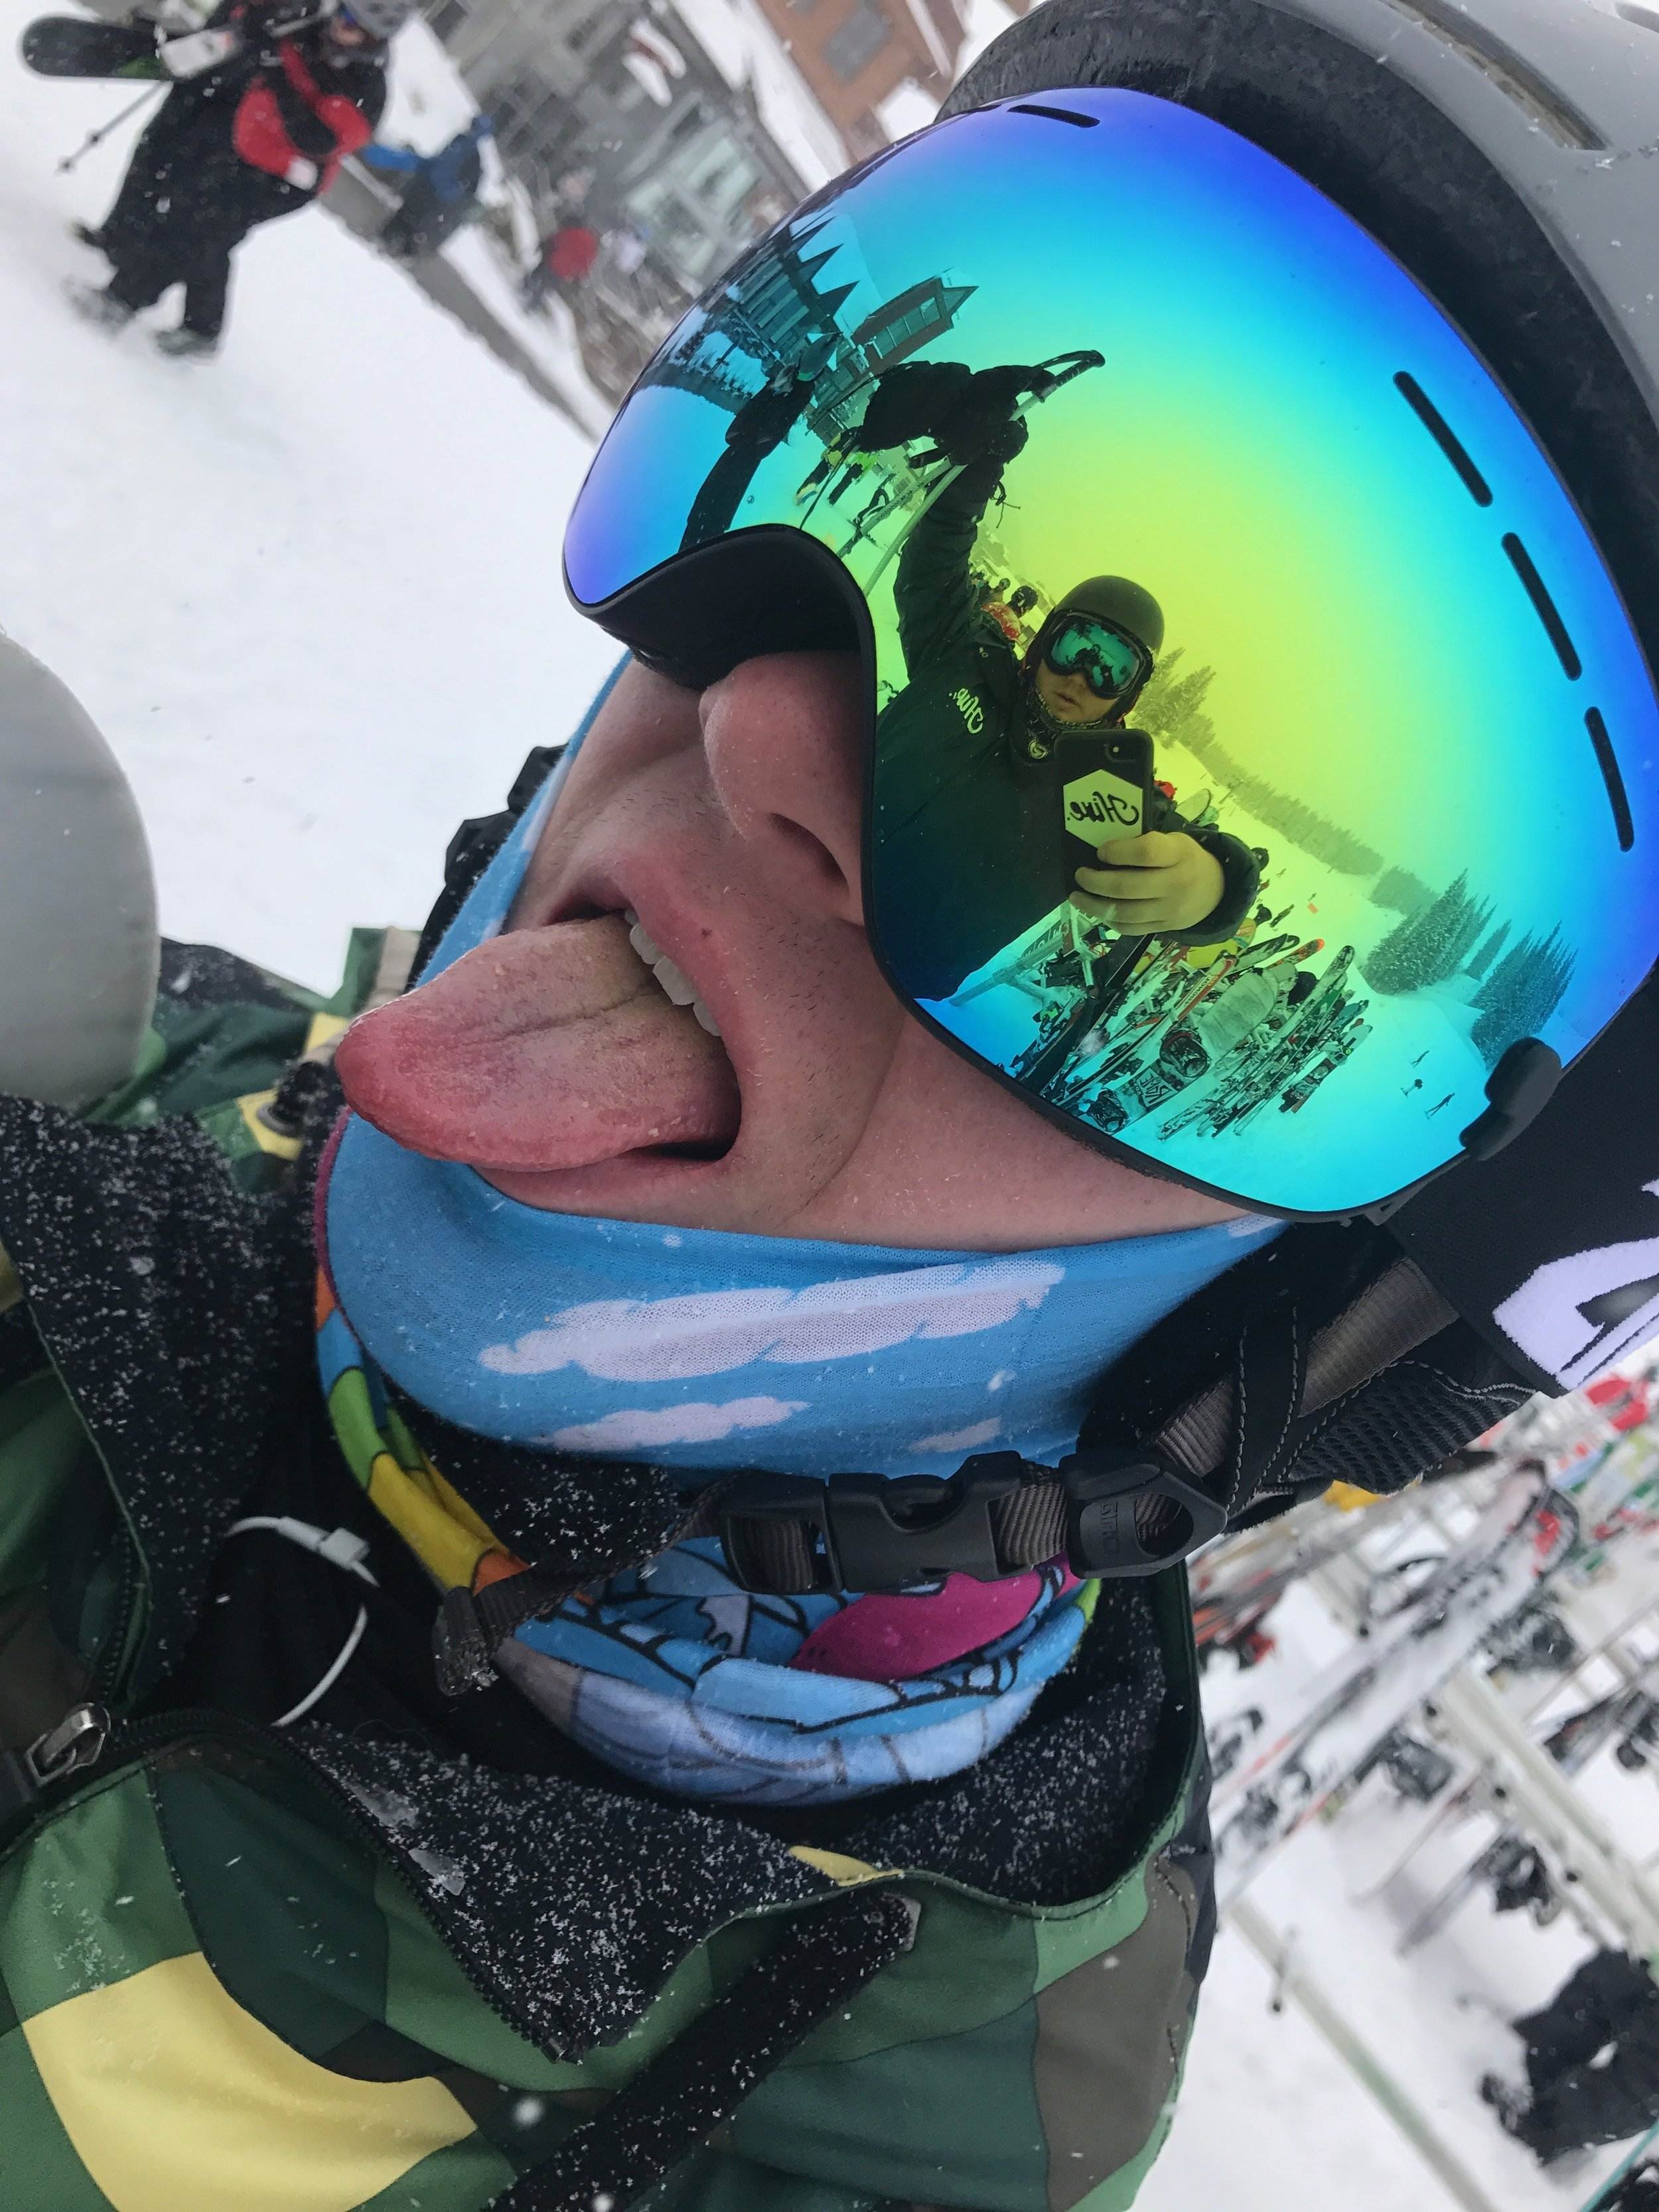 Cole Ehresmann takes a picture of his reflection in his friend's goggles.  Image: Cole Ehresmann